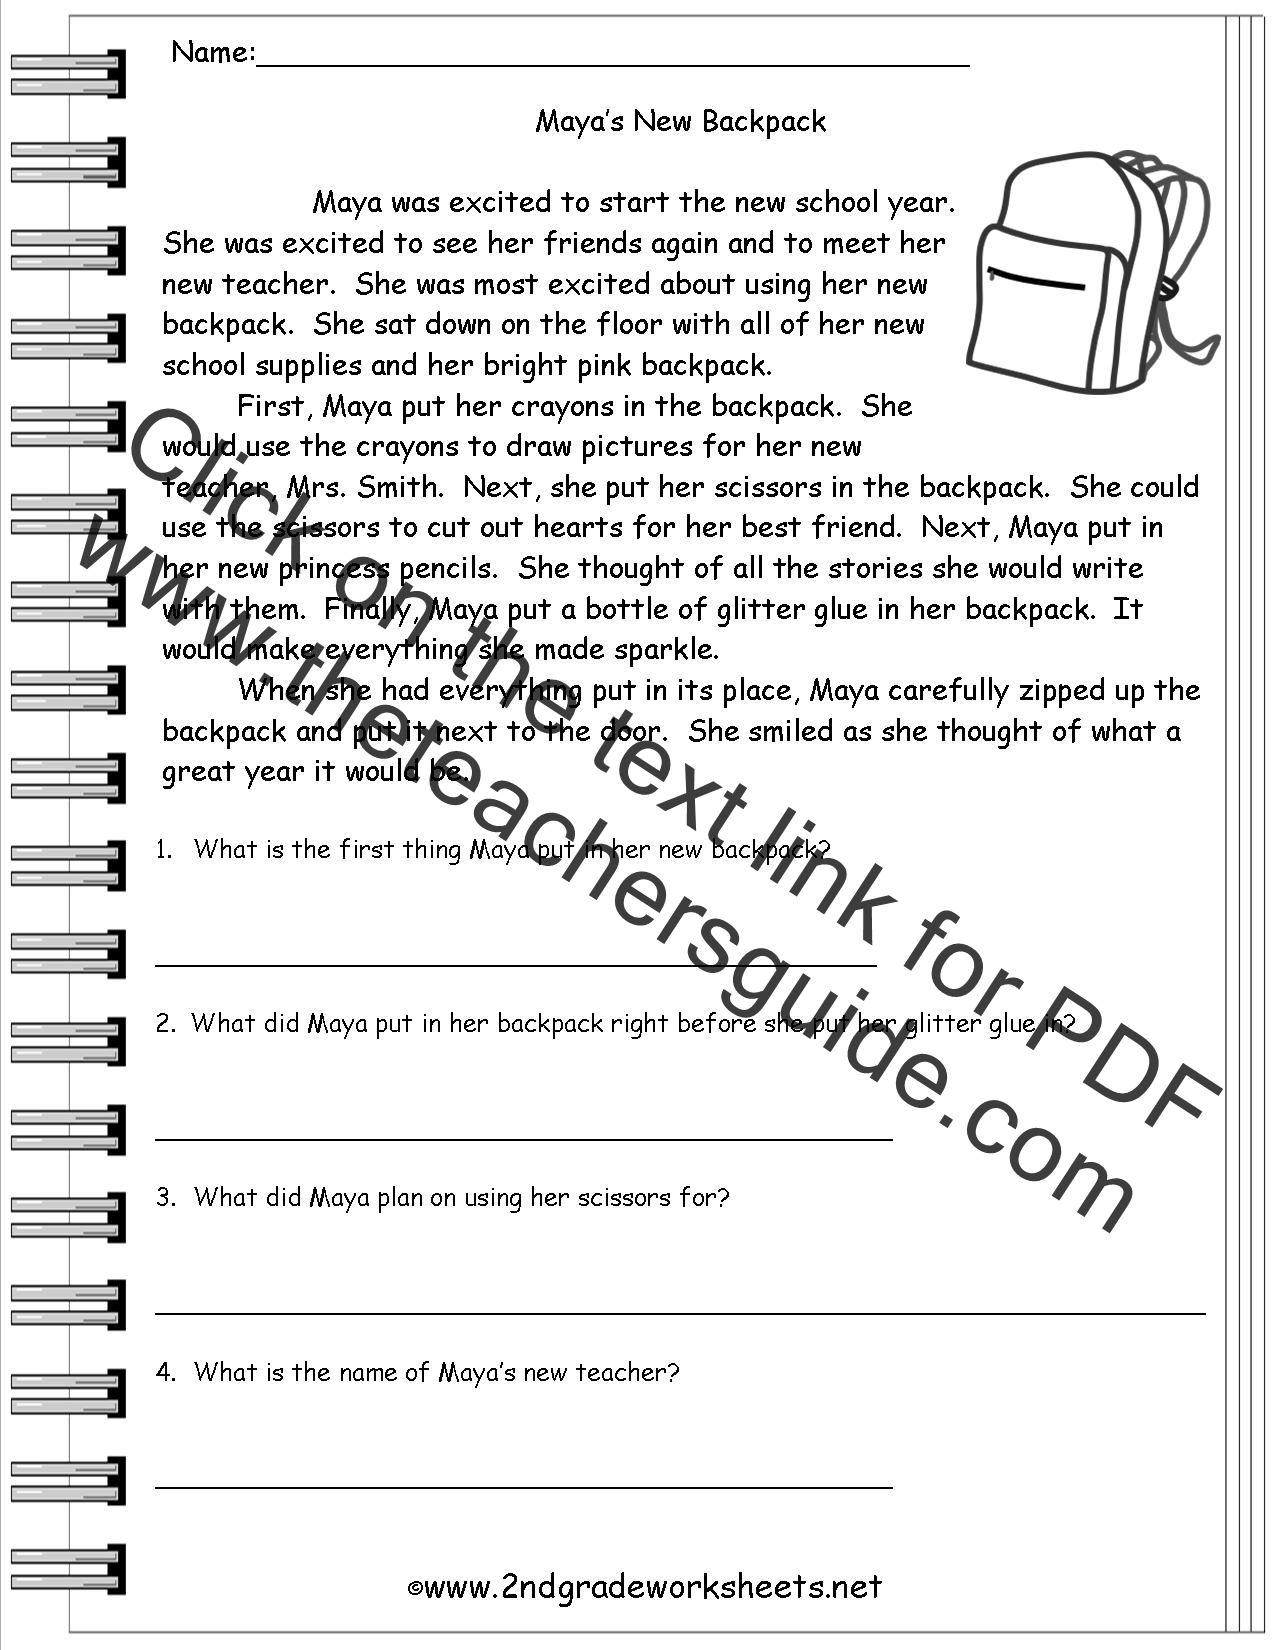 Worksheets Free Reading Comprehension Worksheets For 5th Grade reading worksheeets literature worksheets